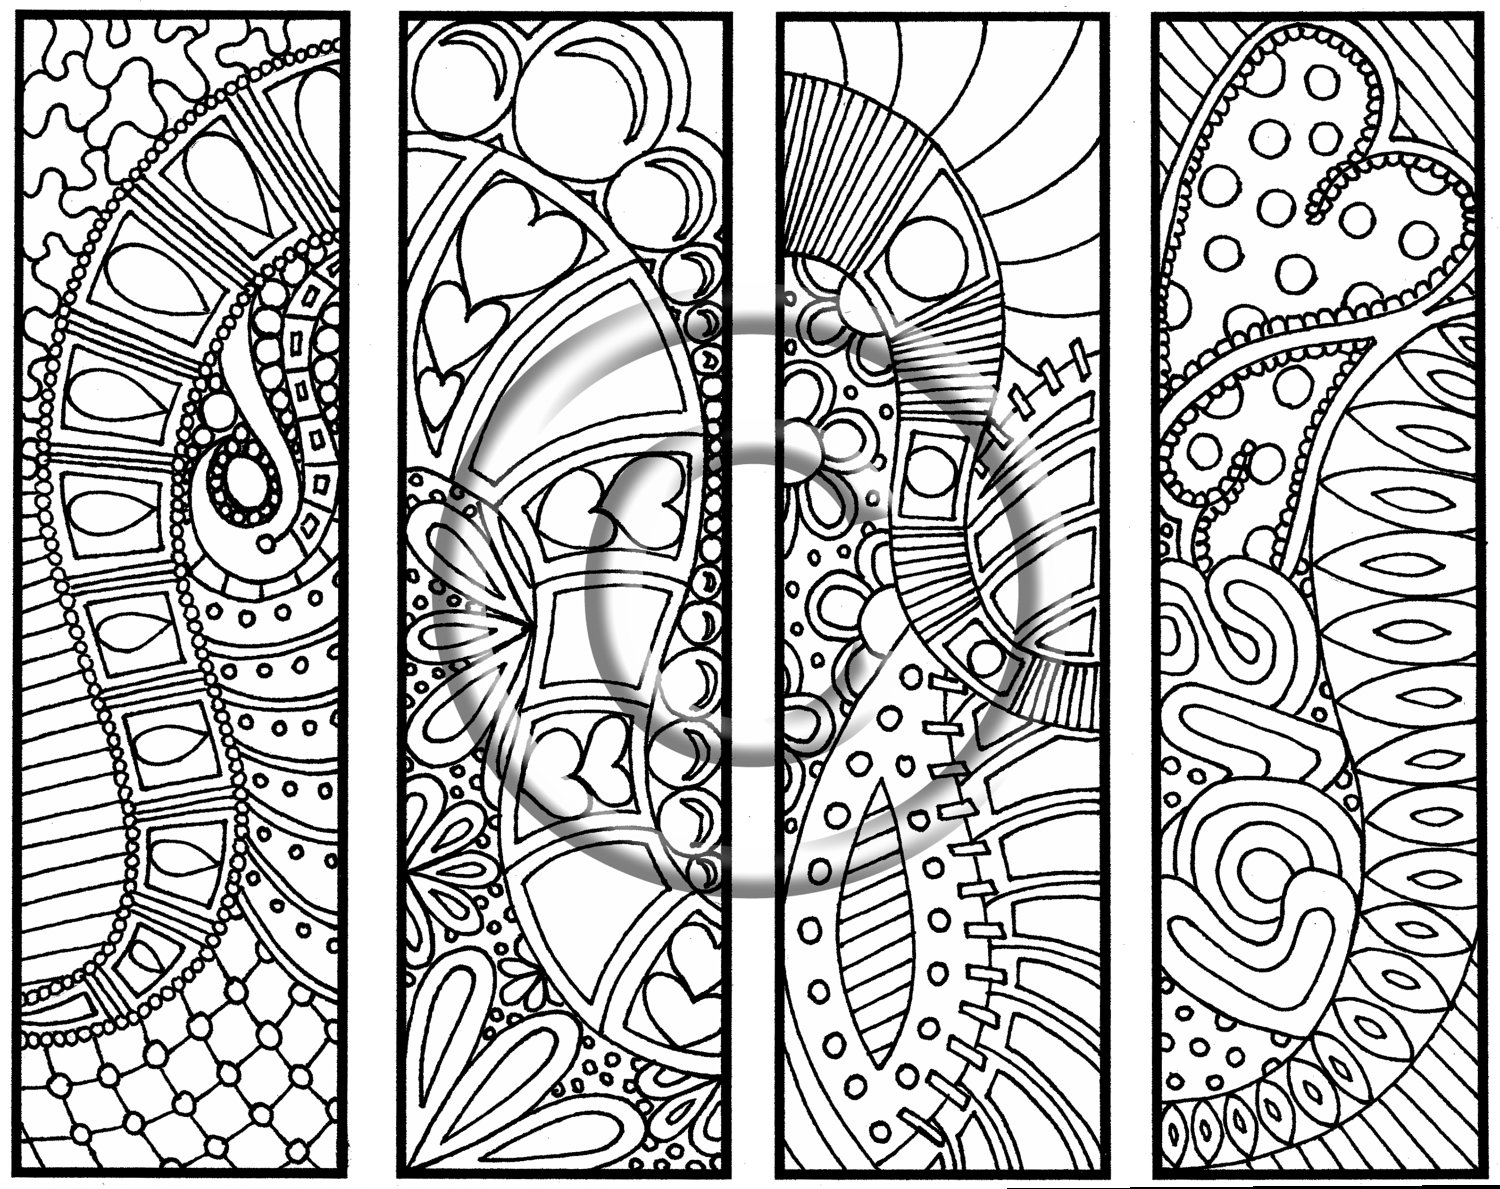 Top 10 Outrageous Adult Abstract Themes Coloring Pages Drawing